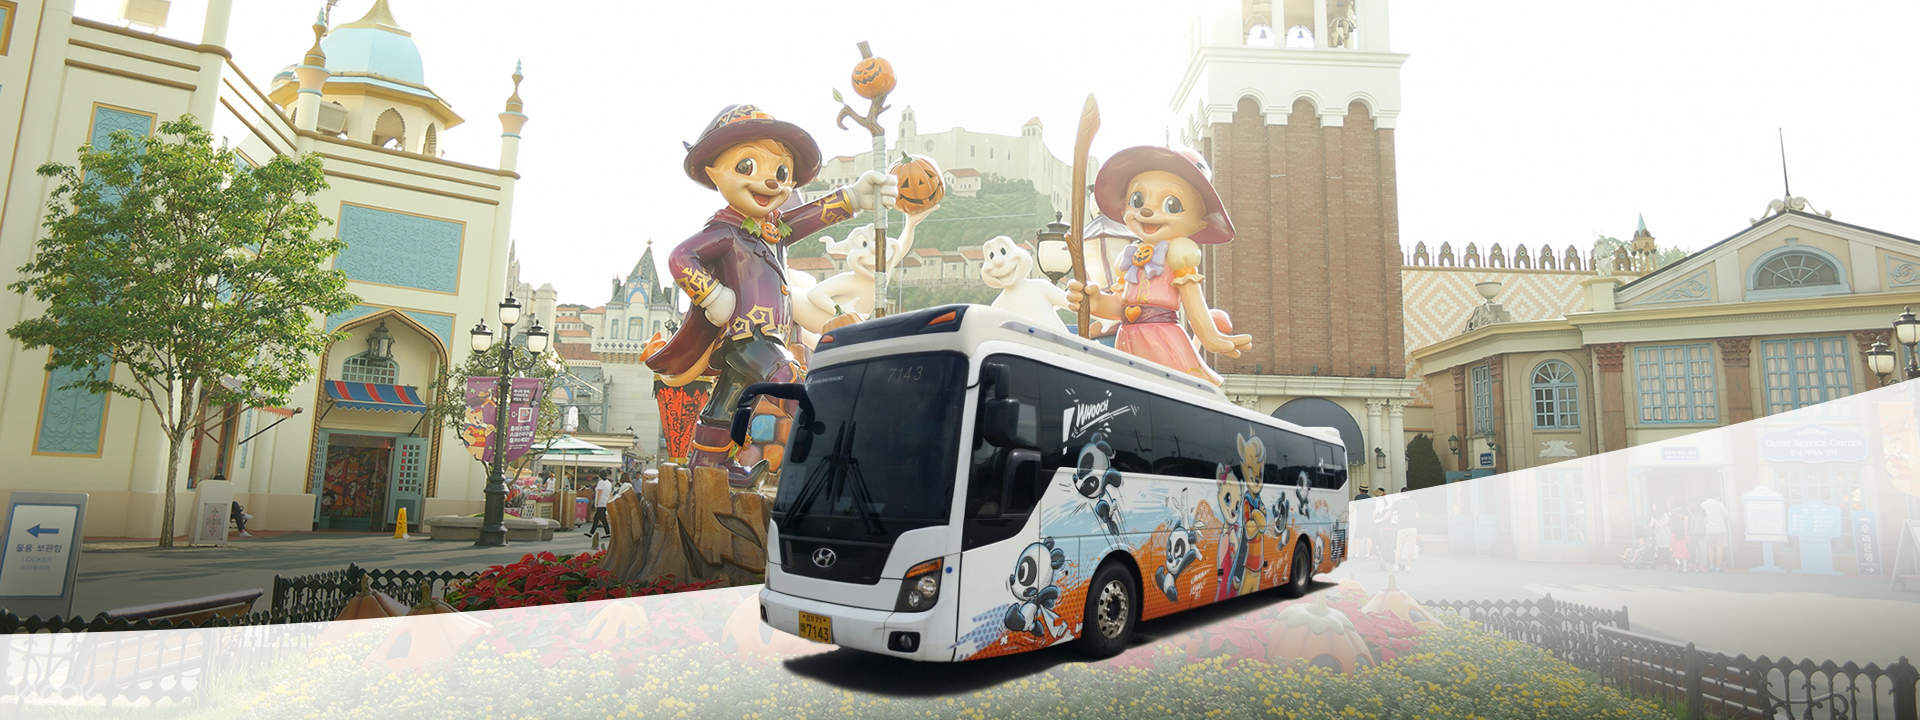 [Sale - 37% OFF] Everland Ticket and Round-trip Shuttle to